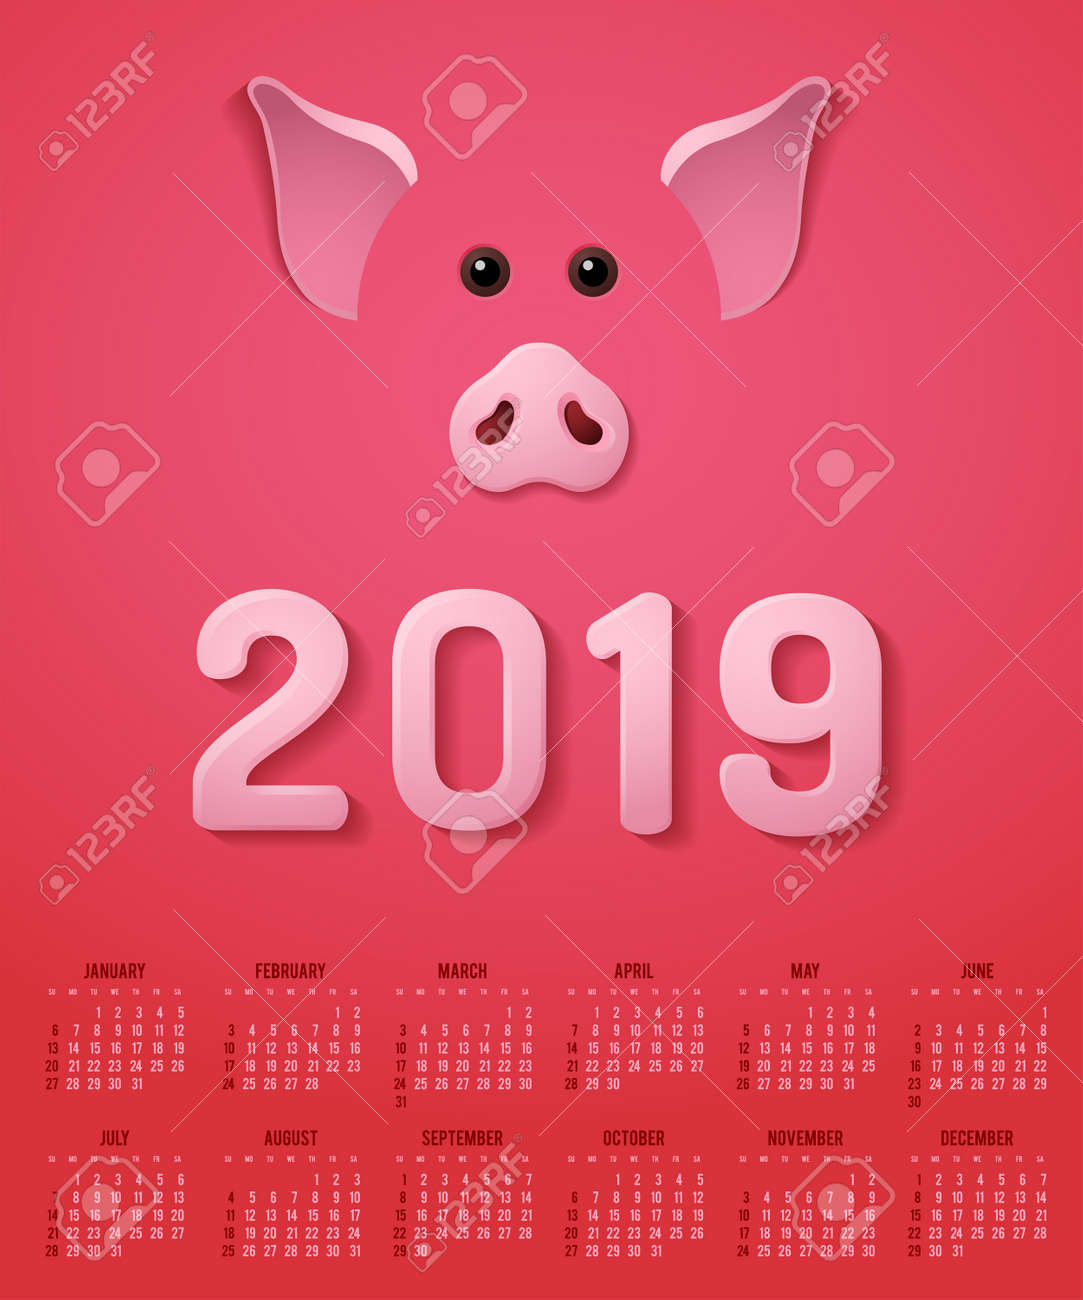 Pig Template | Happy New Year Calendar With Pig Theme Design Template Royalty Free